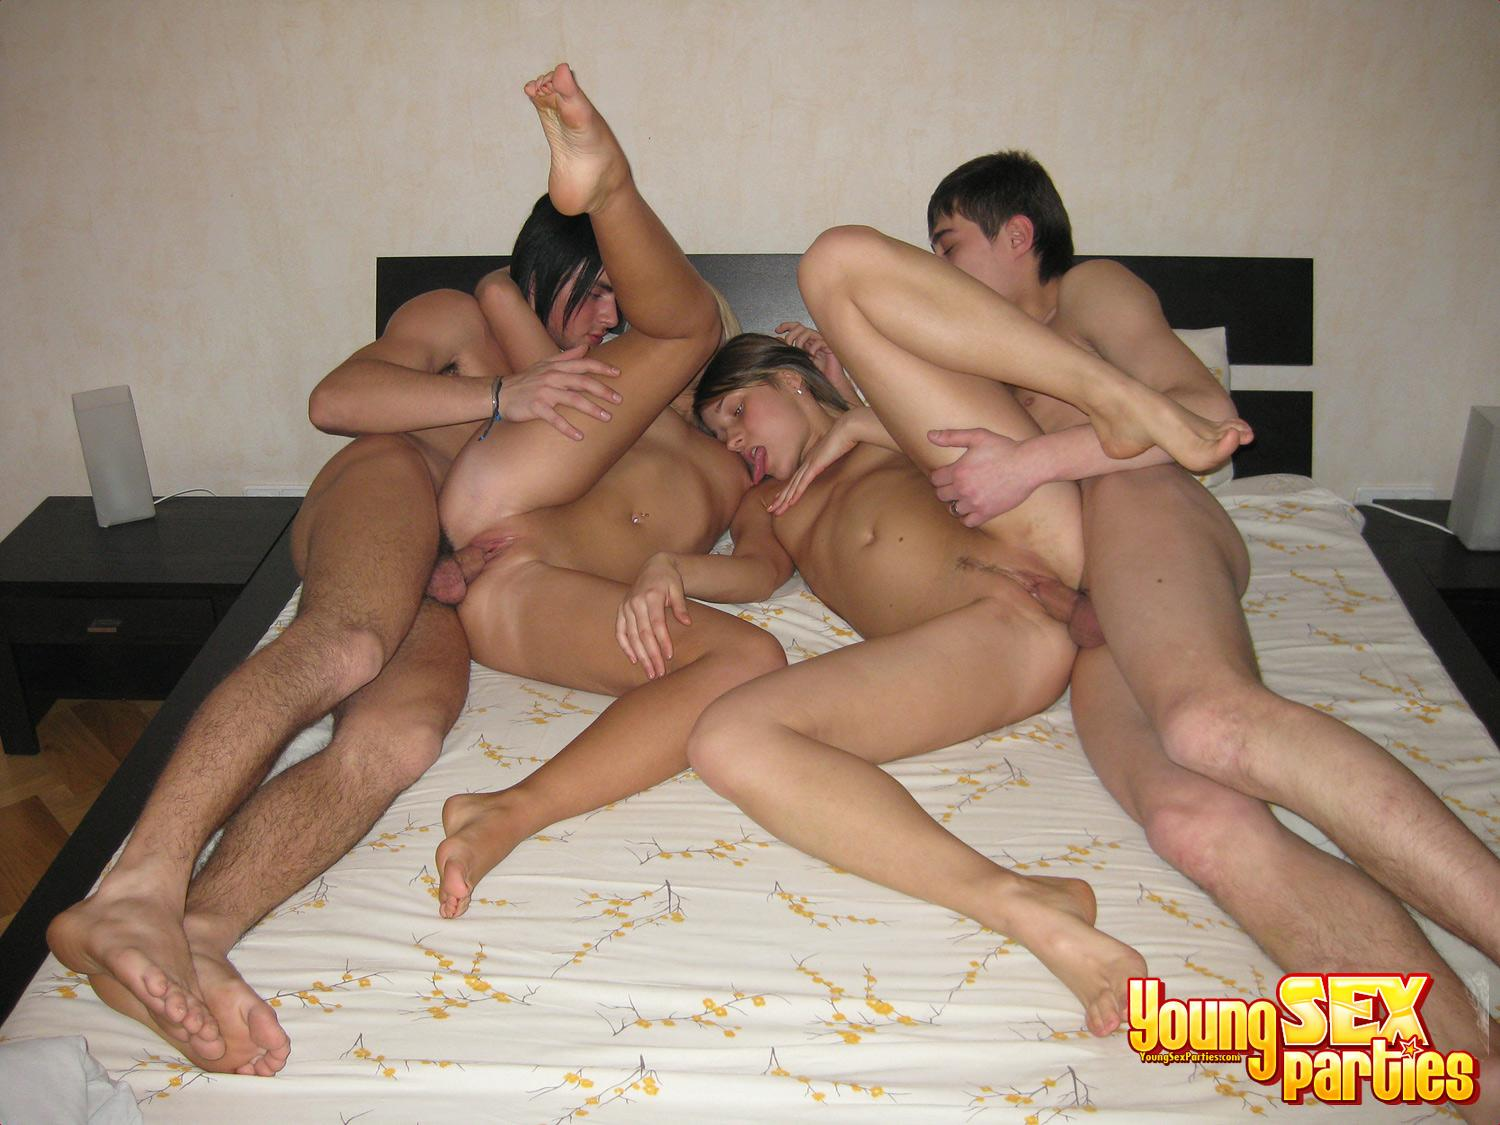 Easier Nude couple sex party idea